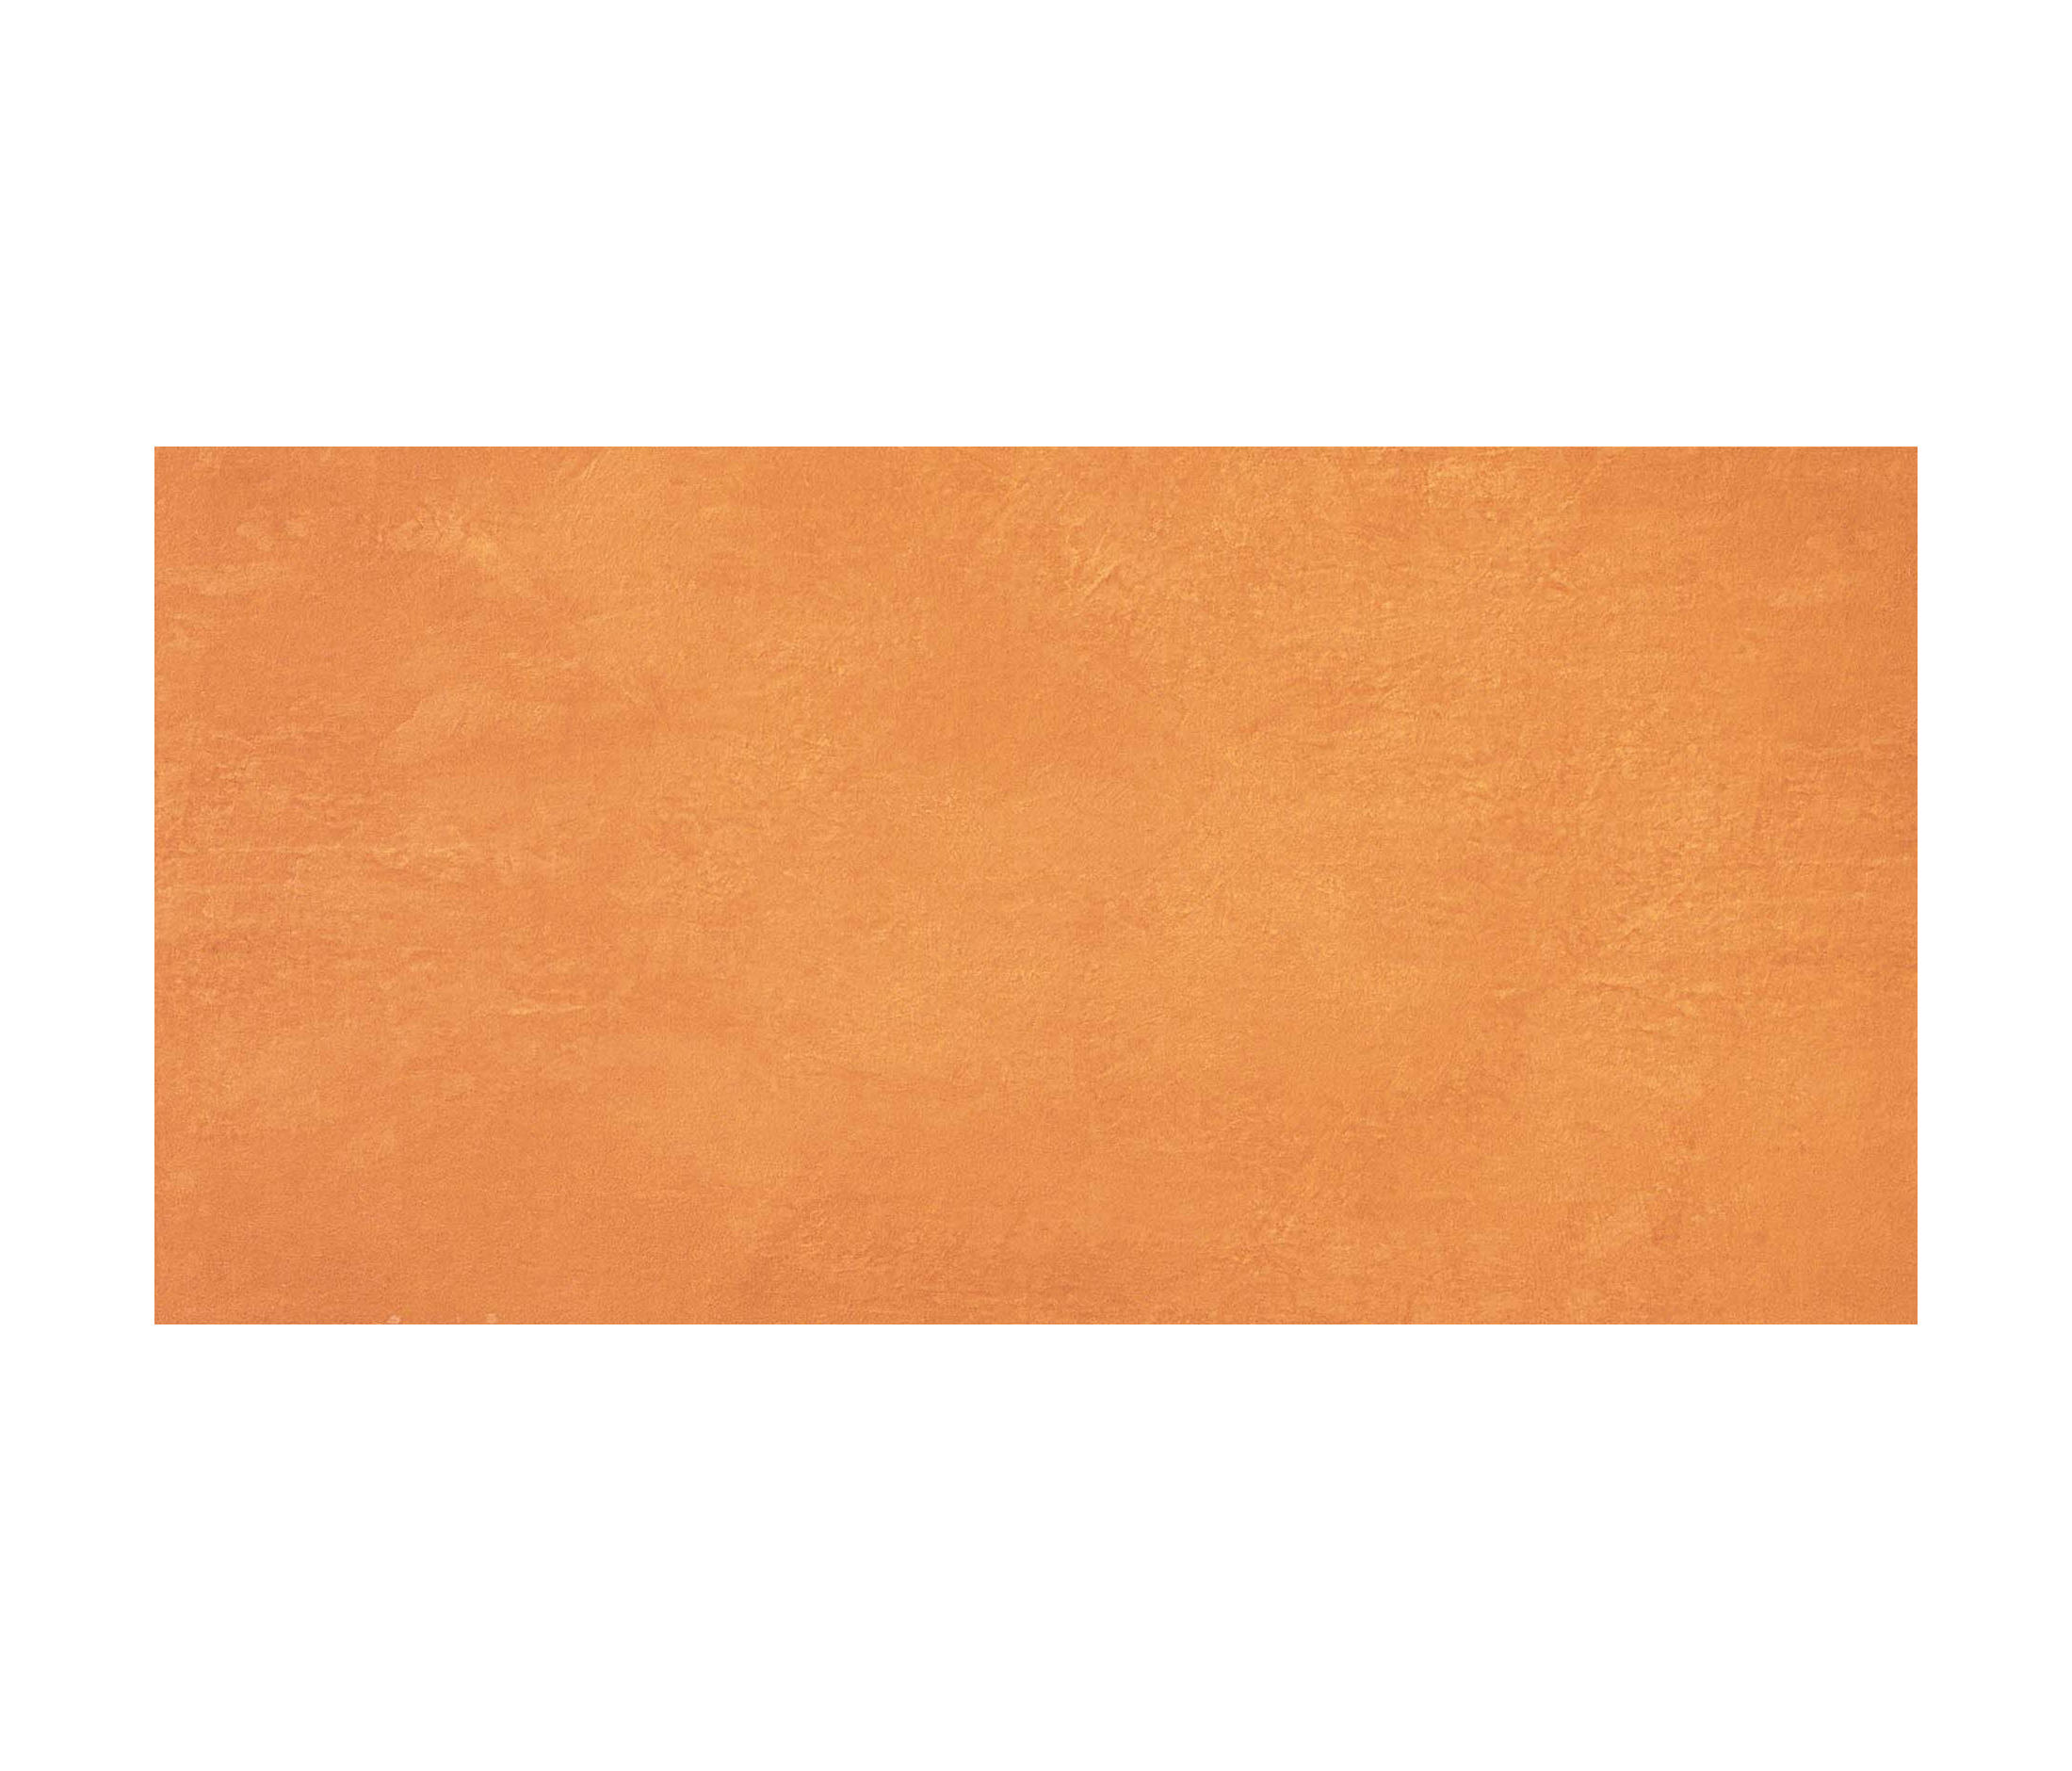 Ewall orange carrelage de atlas concorde architonic - Carrelage atlas concorde ...